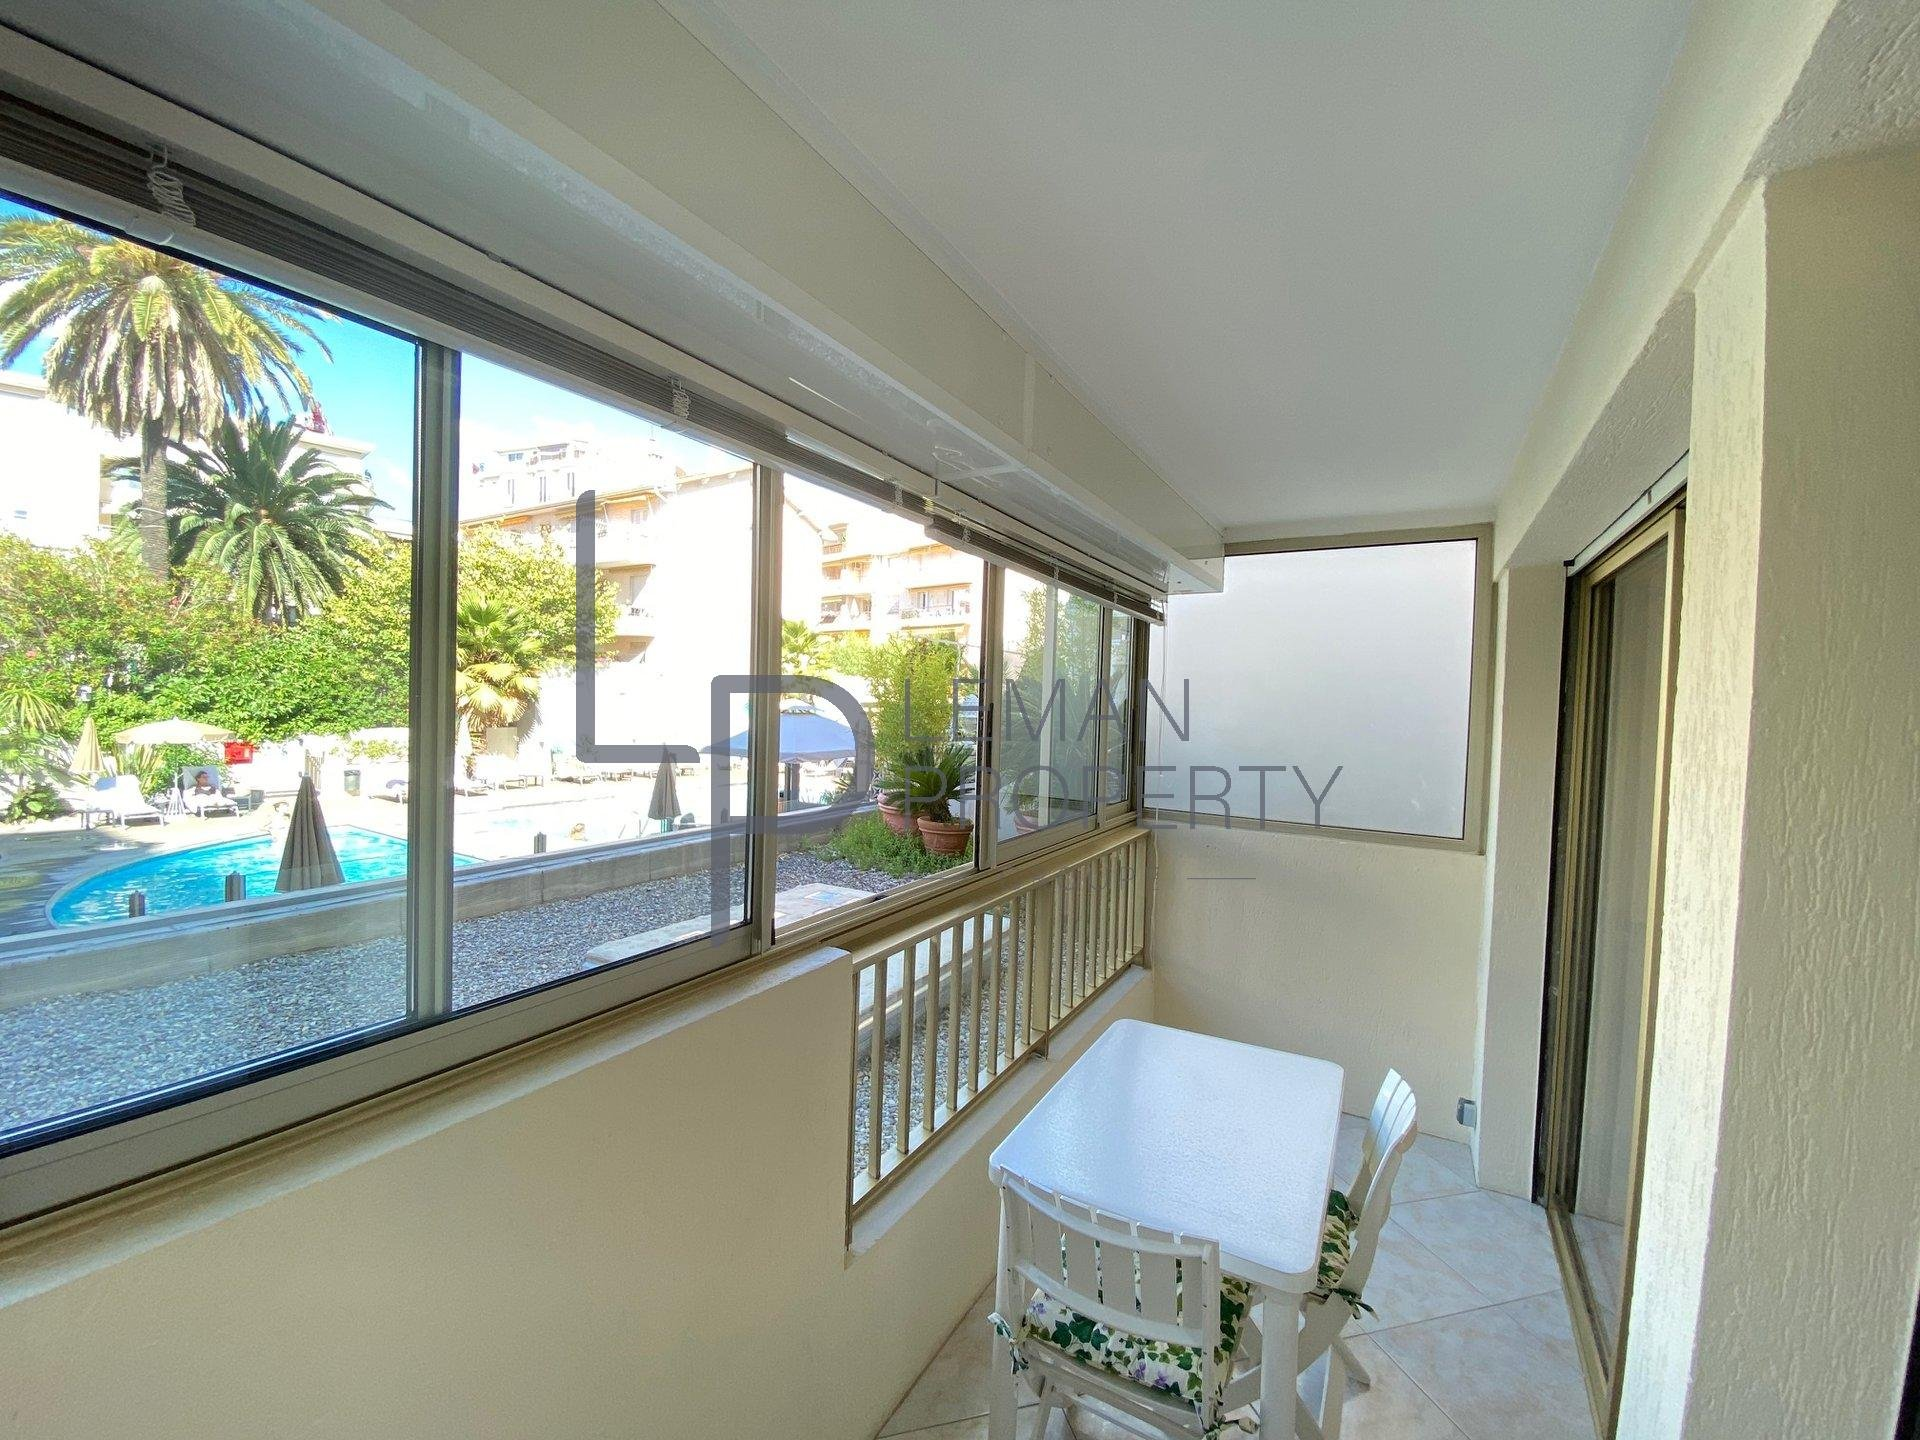 appartement disponible à la vente à Cannes